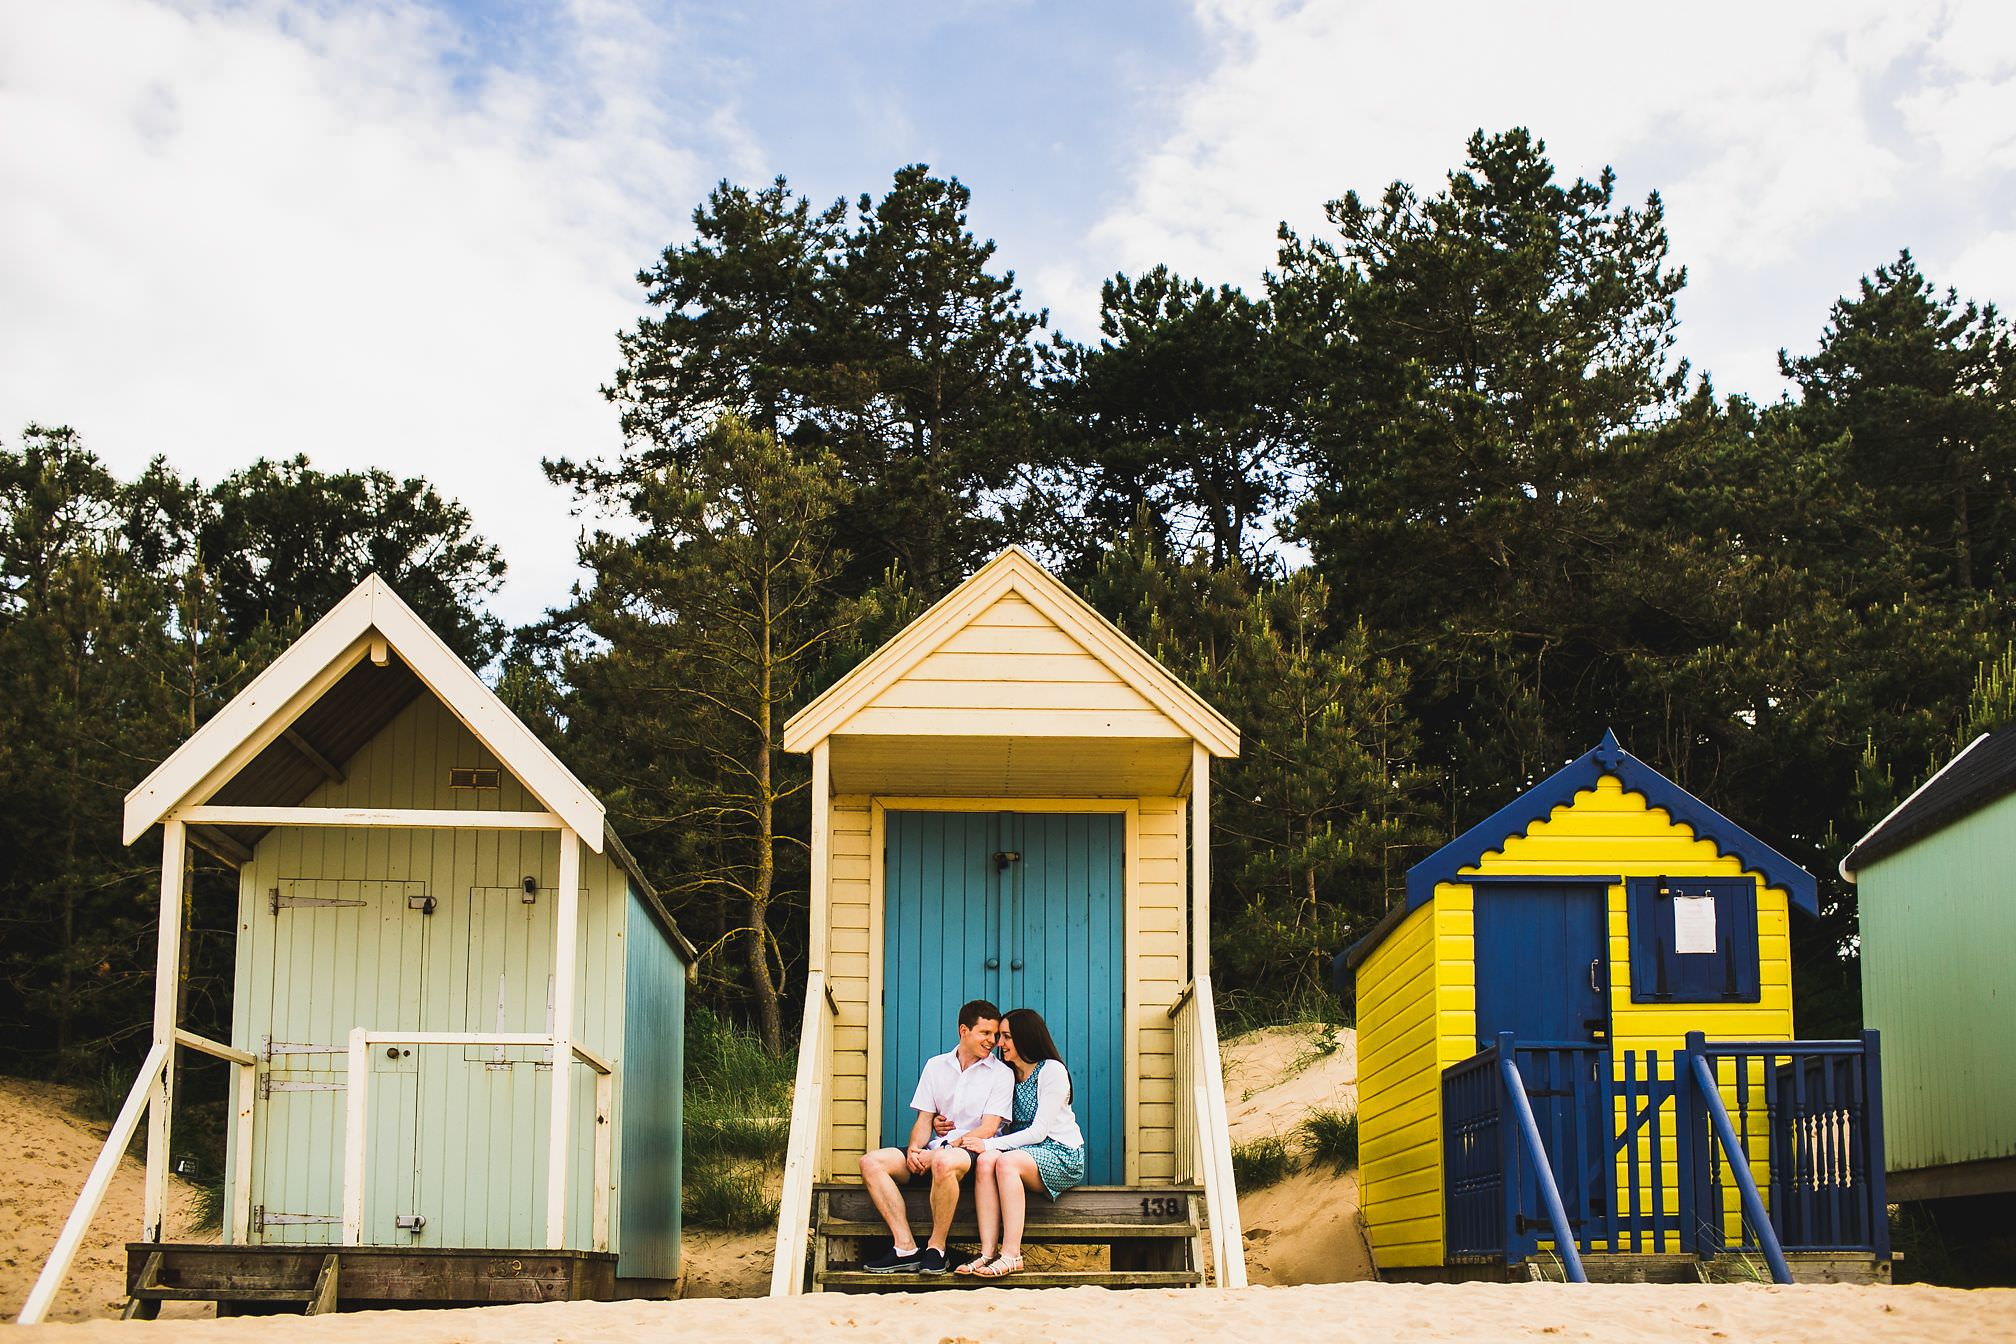 Wells-next-the-Sea Beach Hut Pre-Wedding Photo